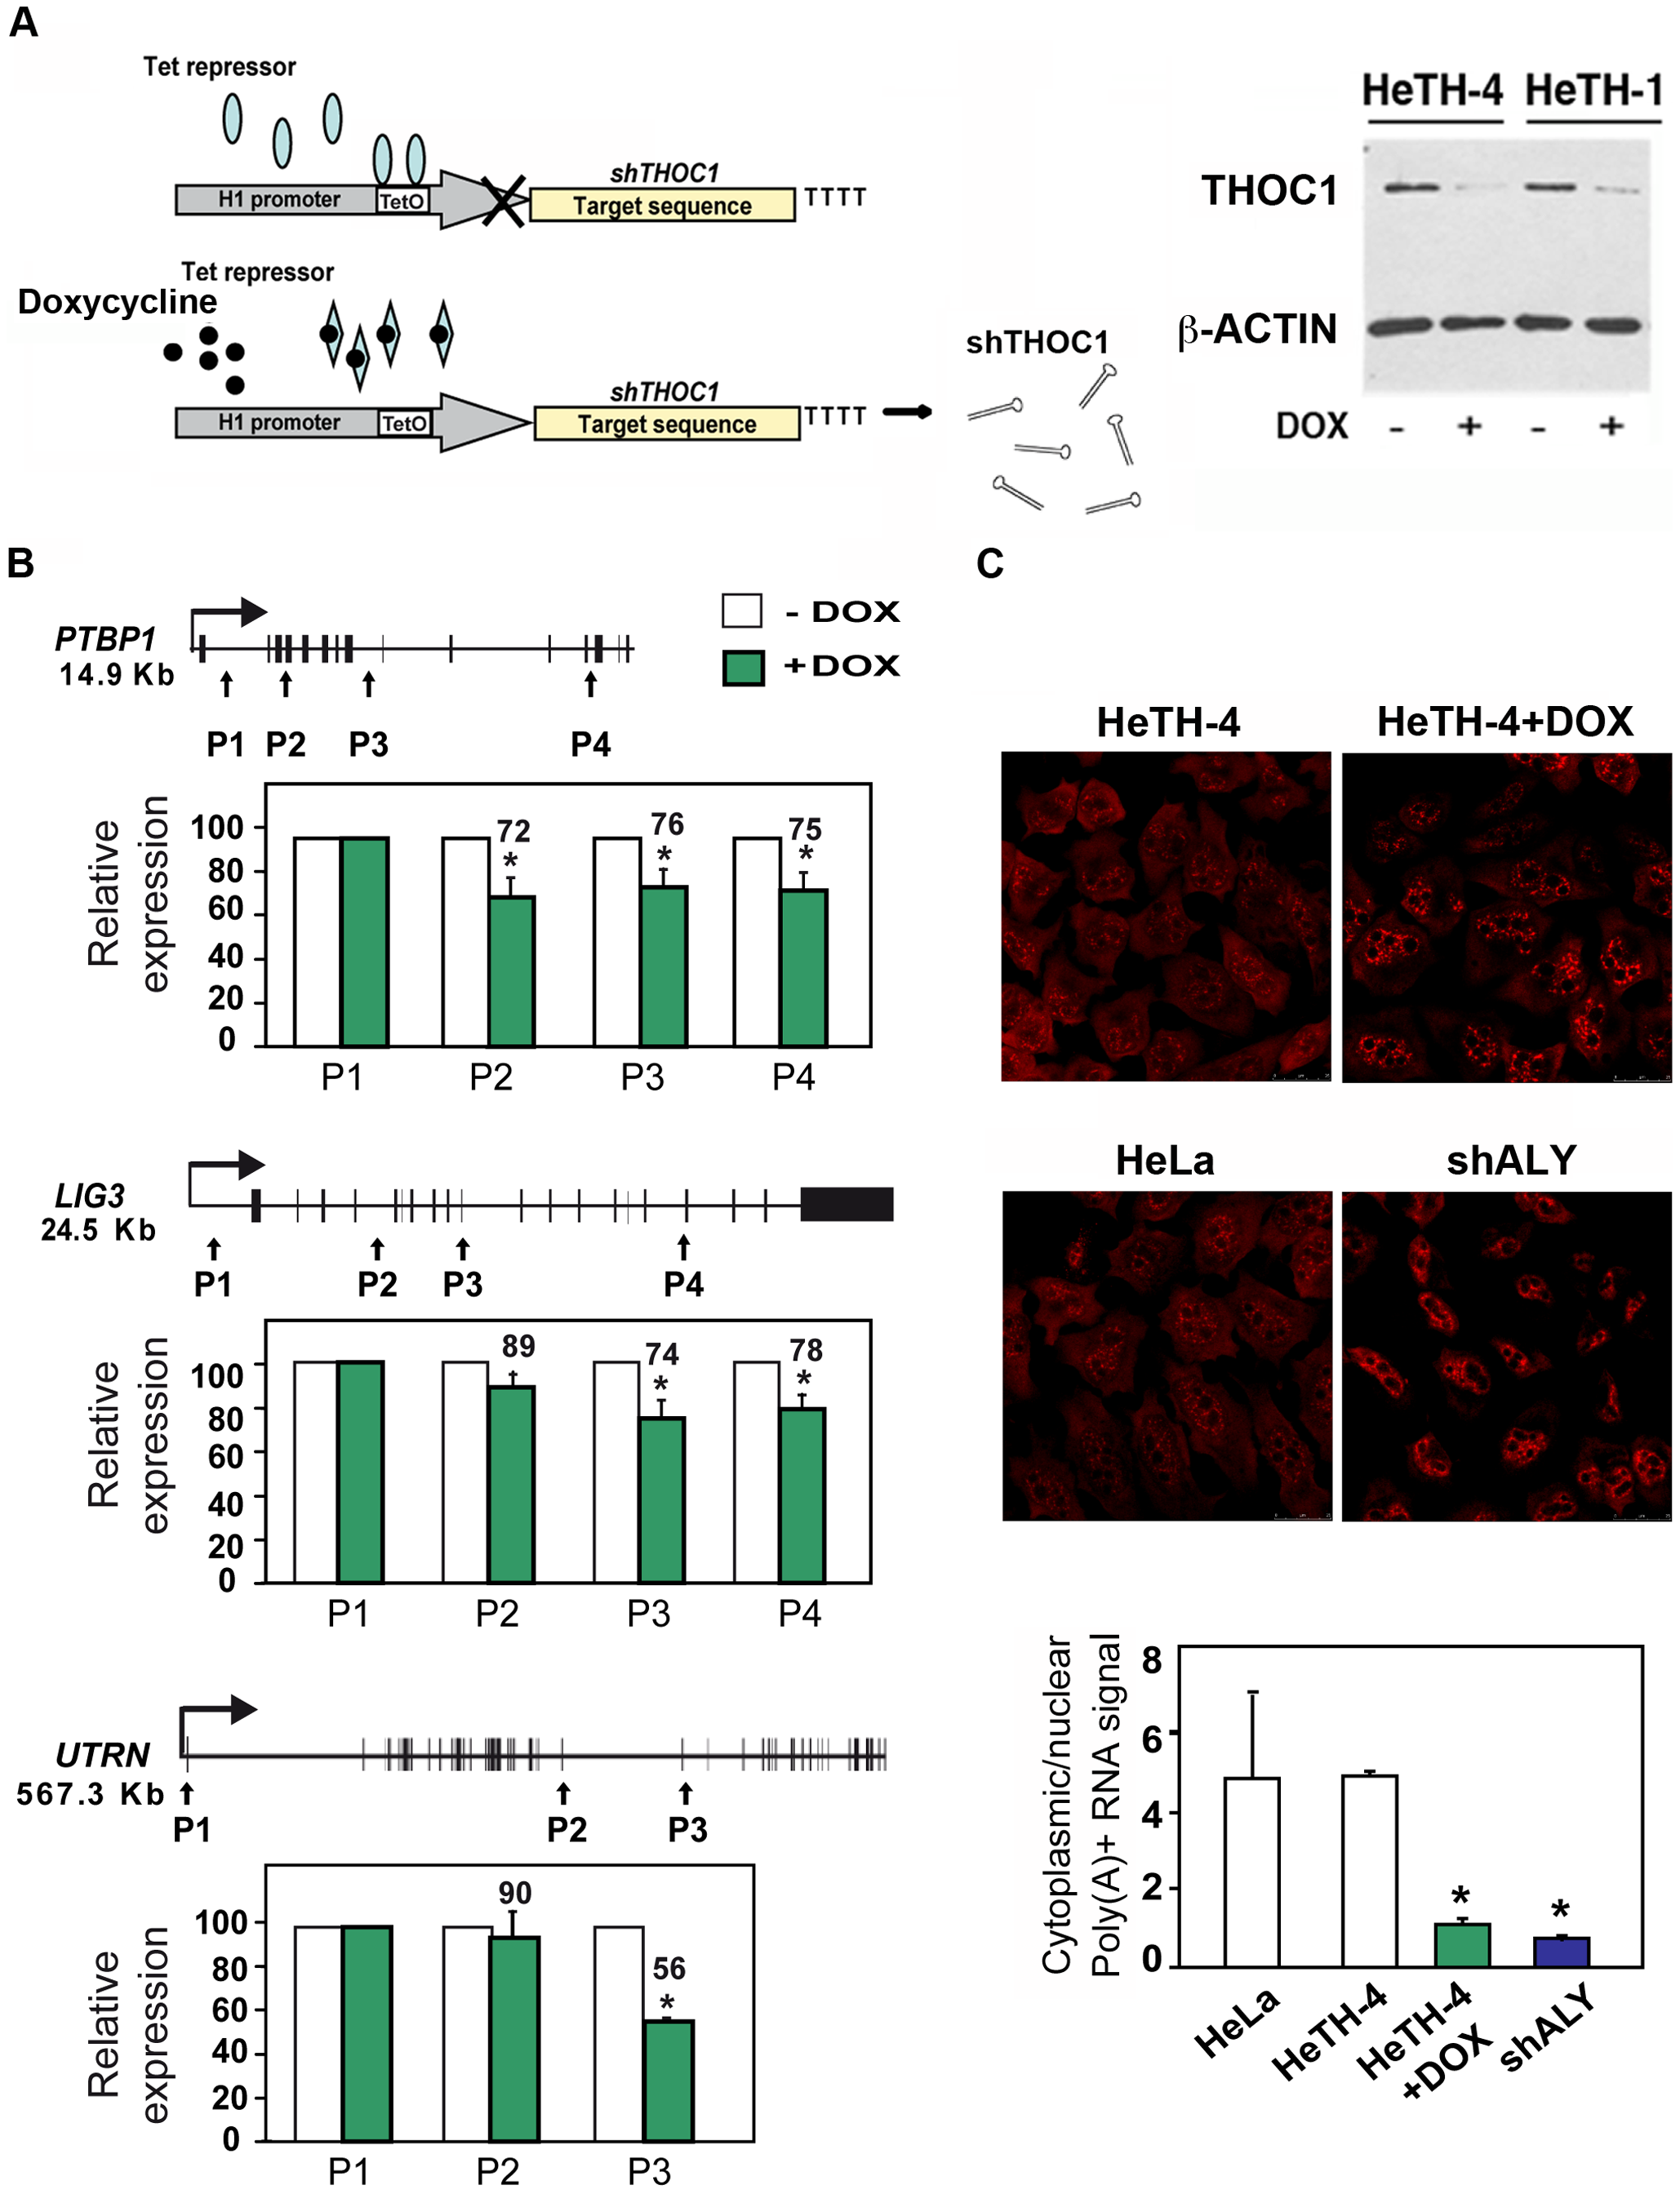 Gene expression defects in stable cell lines depleted of THOC1.